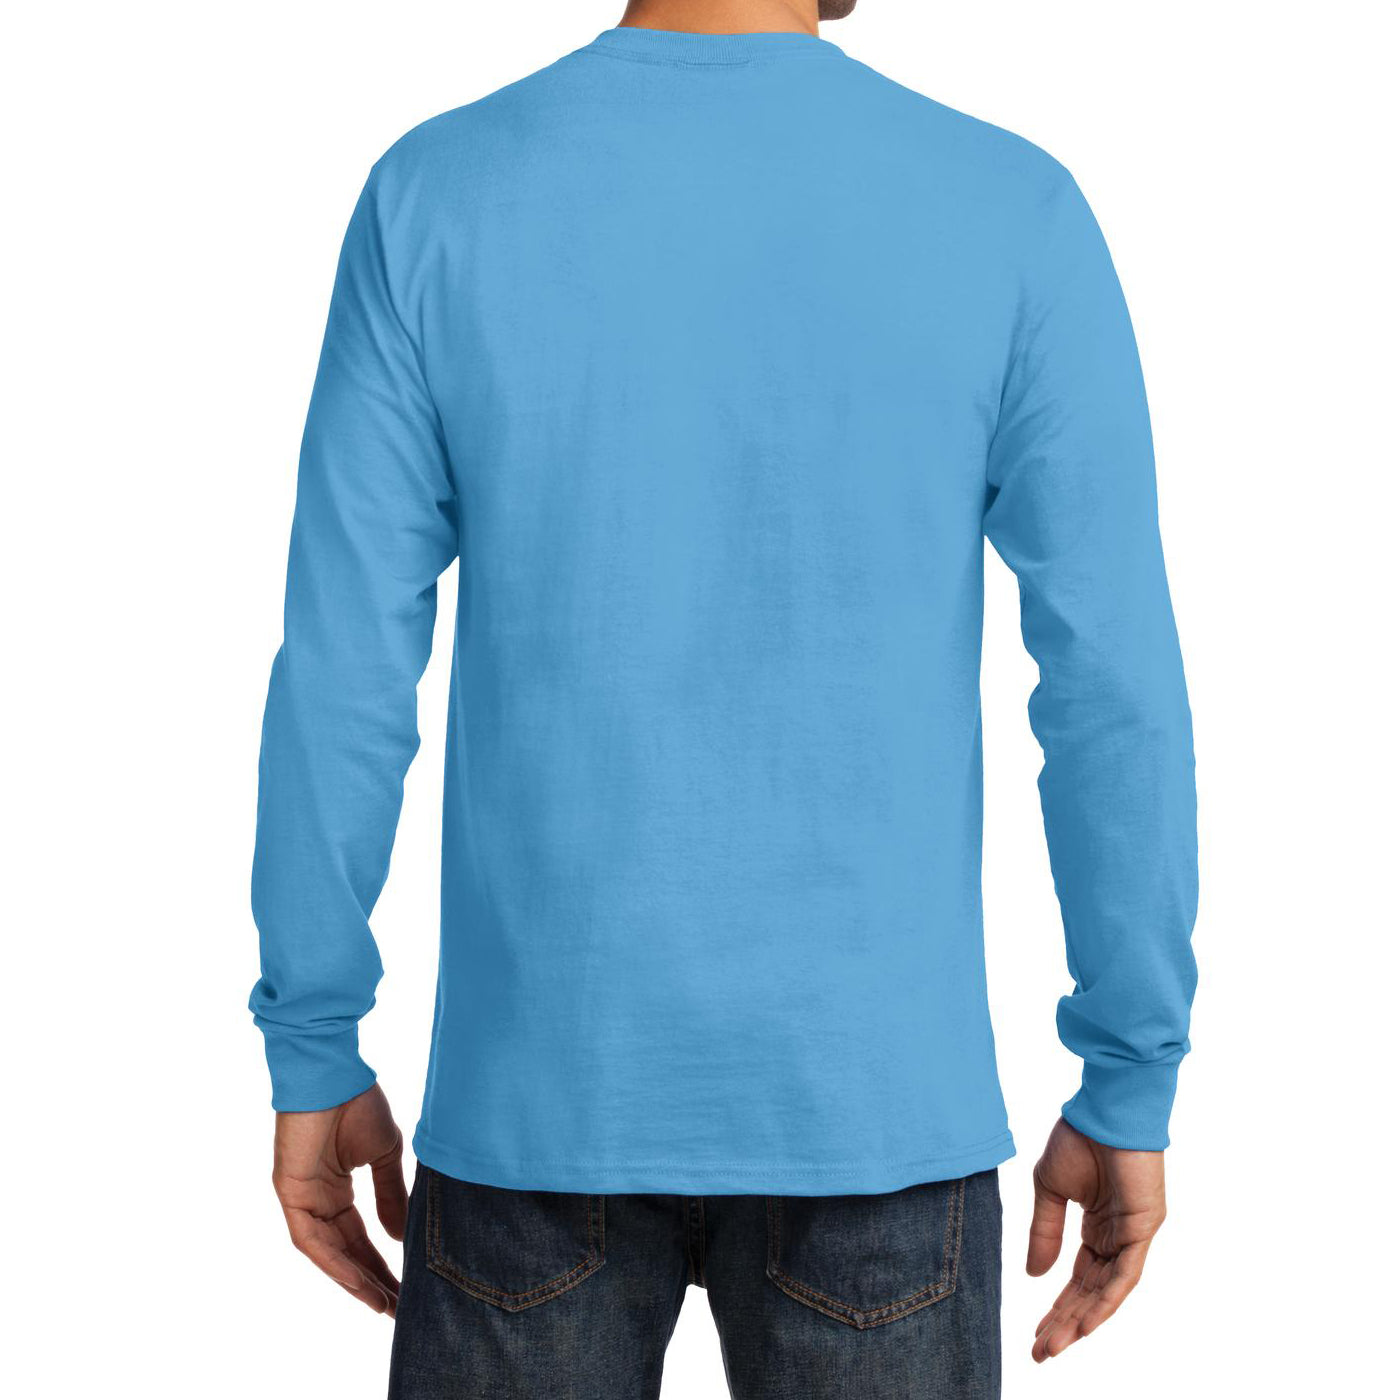 Men's Long Sleeve Essential Tee - Aquatic Blue - Back